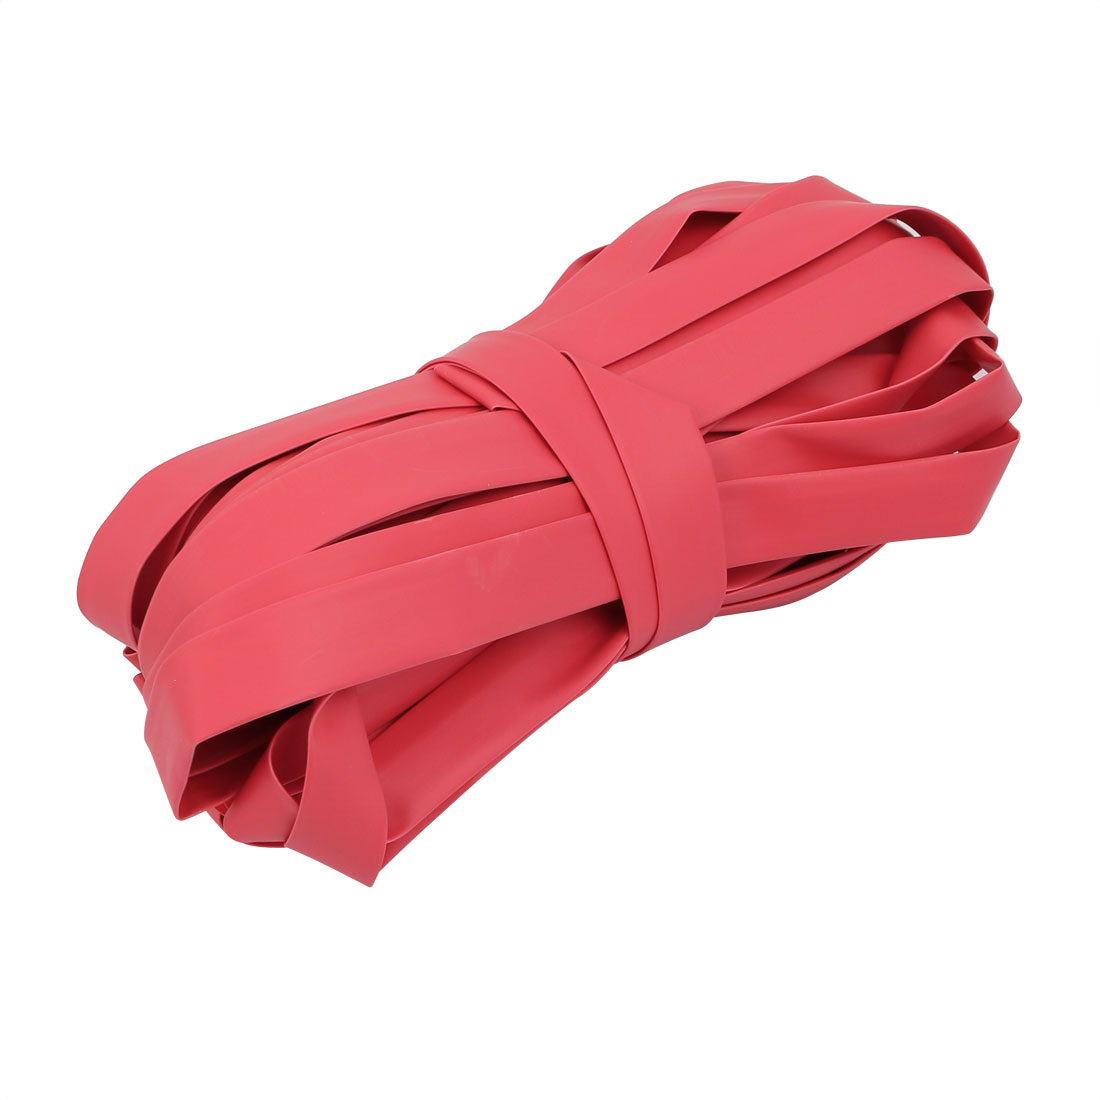 15M Long 10mm Inner Dia. Polyolefin Heat Shrinkable Tube Red for Wire Repairing